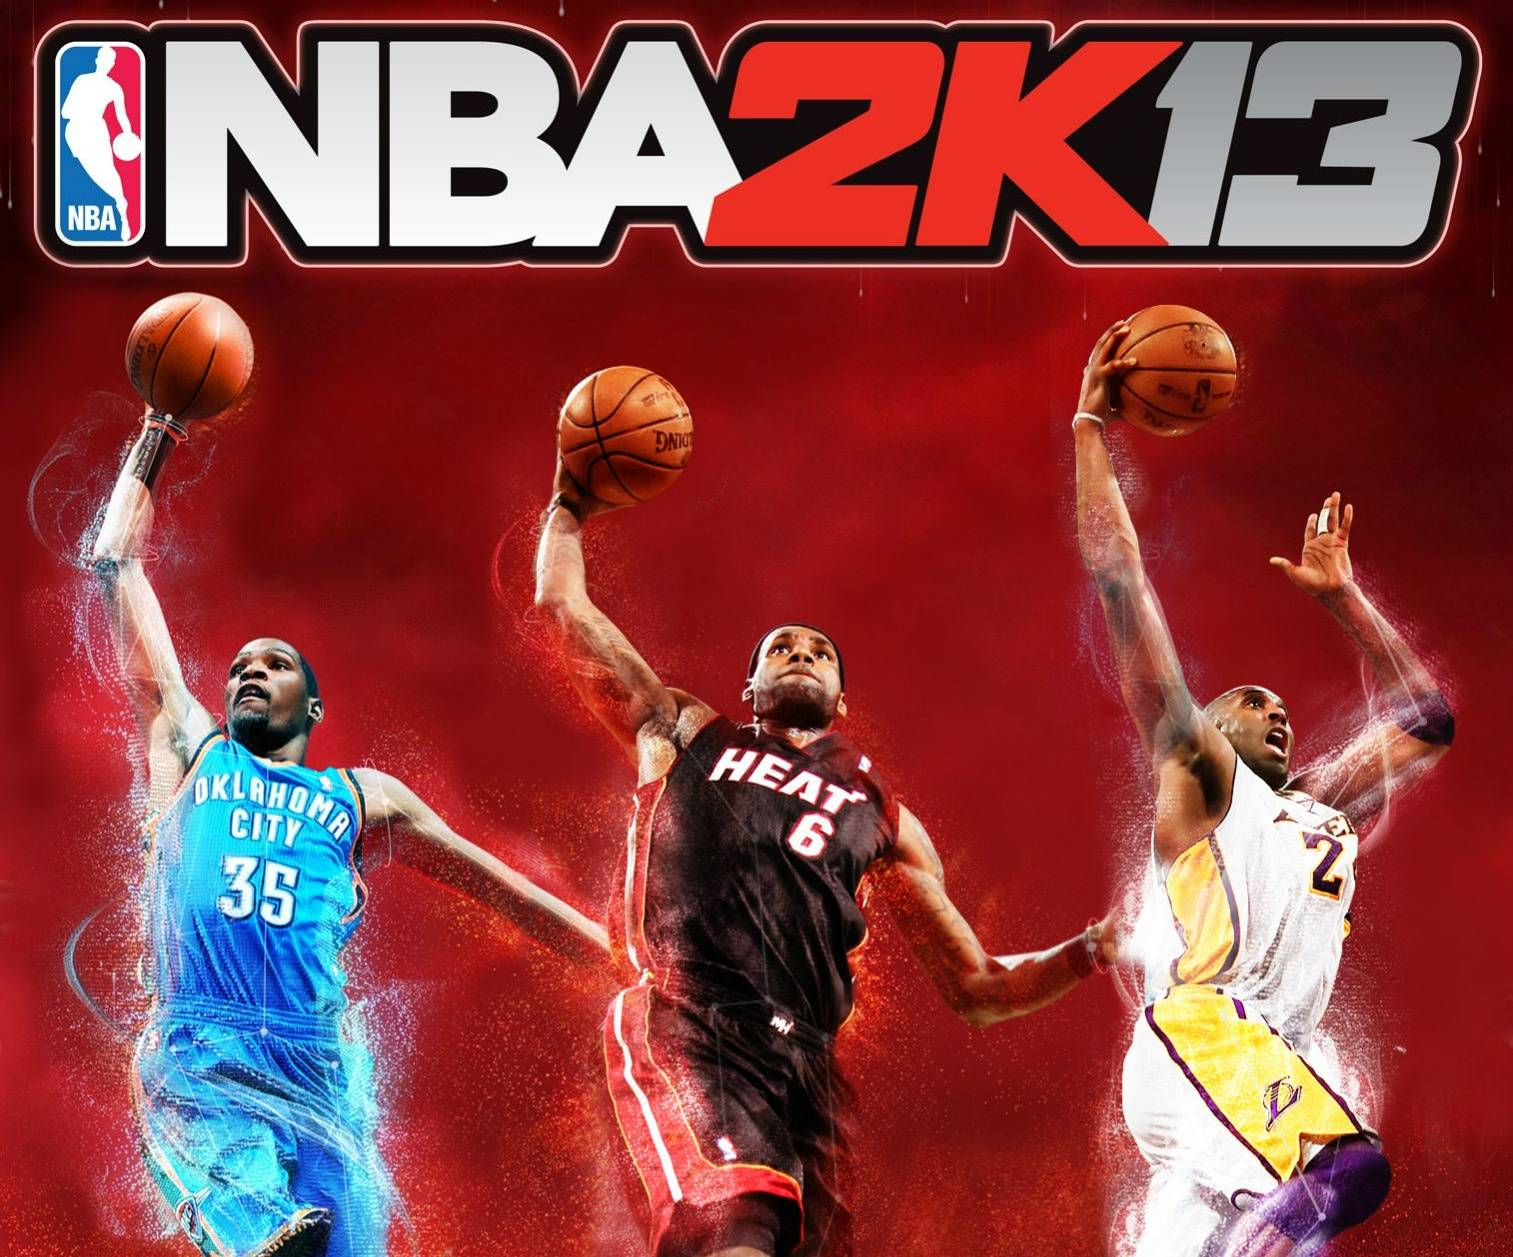 Alternative Nba 2k13